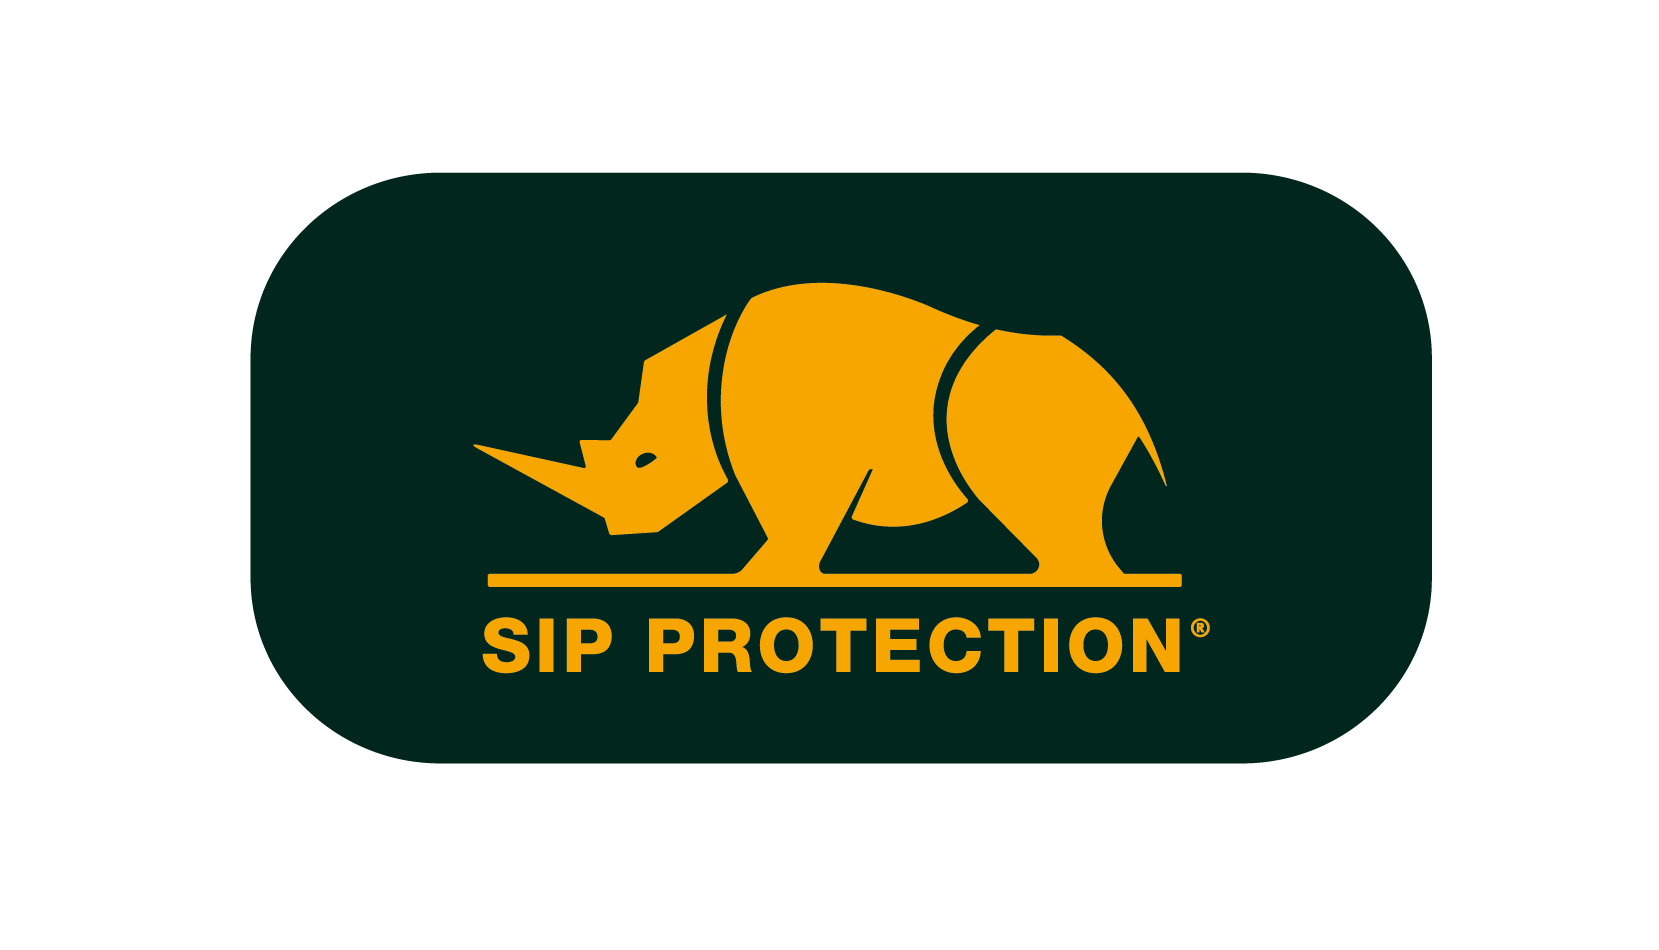 SIP® Protection